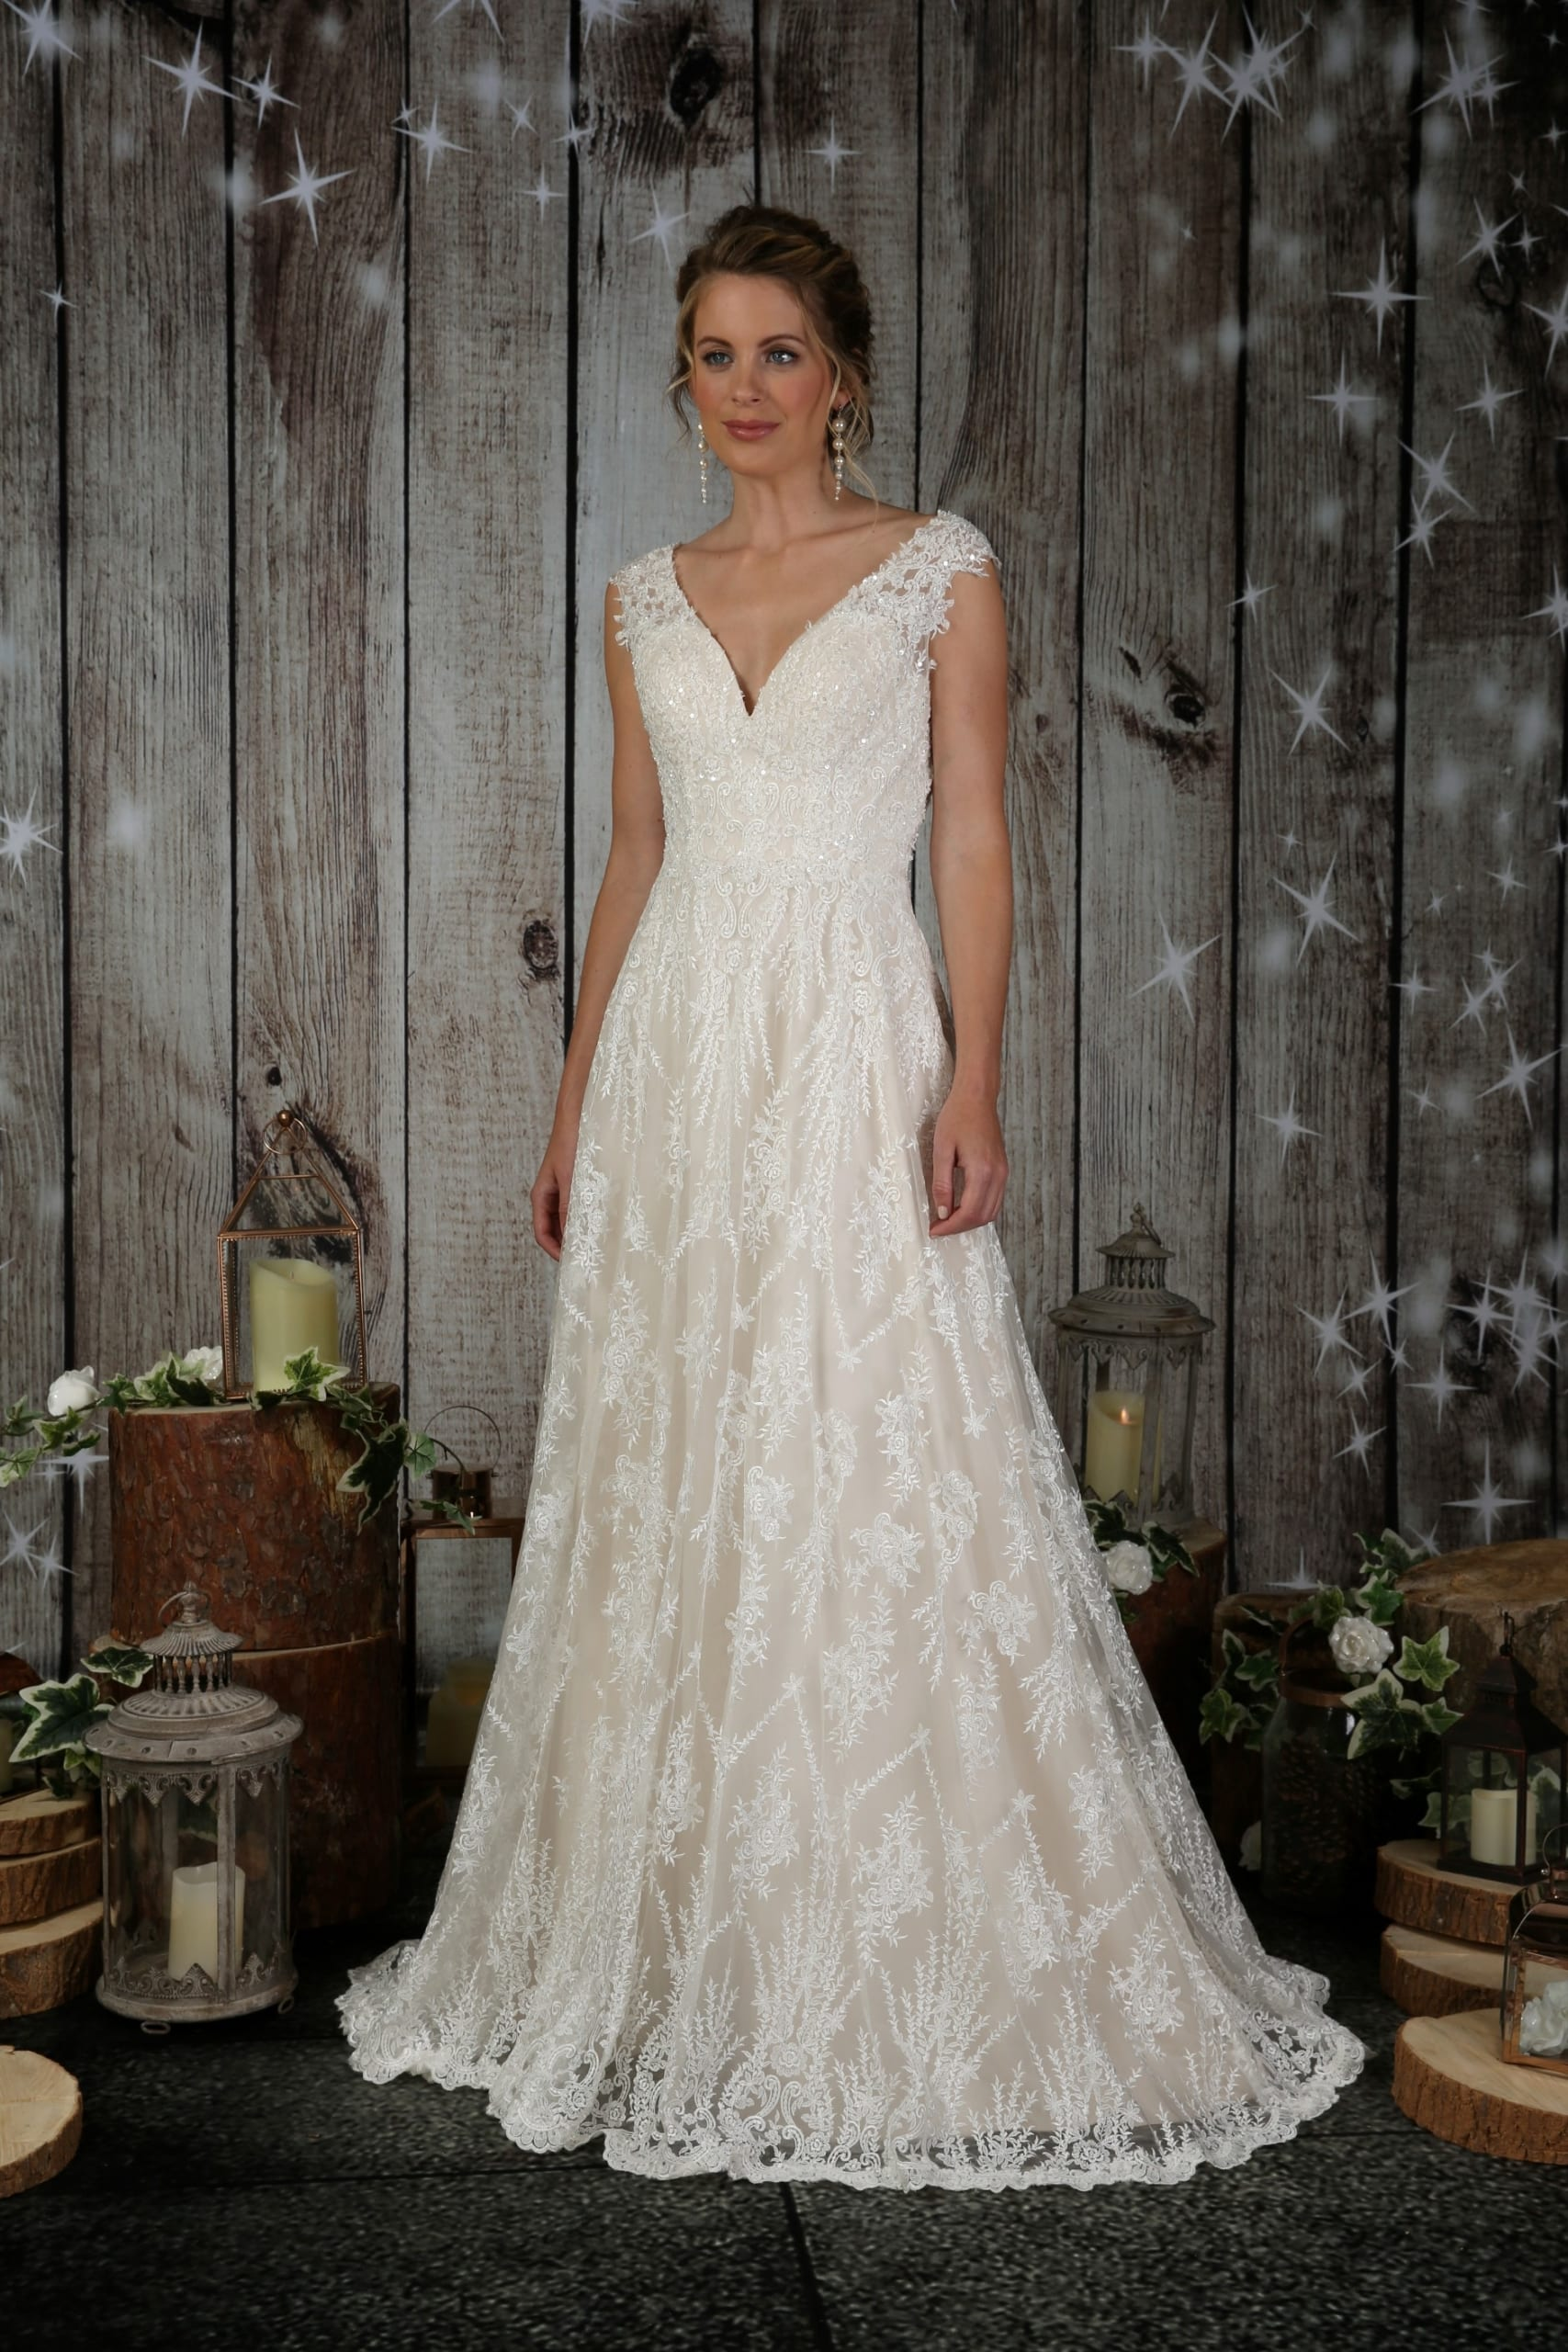 Marcie Wedding Dress